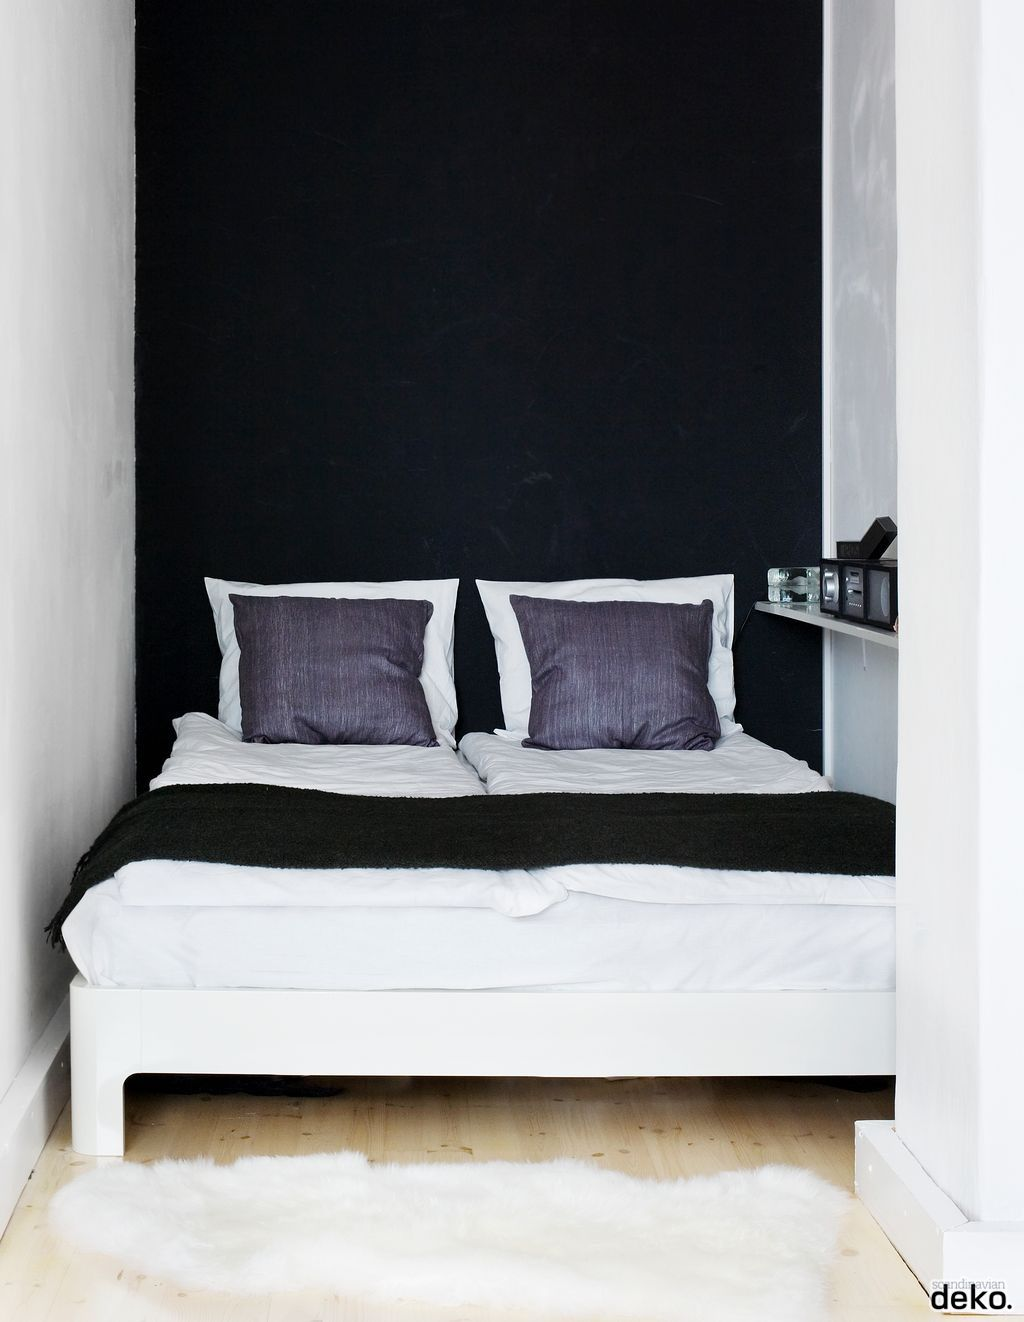 Small Rooms Tiny Bedroom Win Black And White Black Wall Via Scandinaviandeko Com Tiny Bedroom Small Bedroom Simple Bedroom